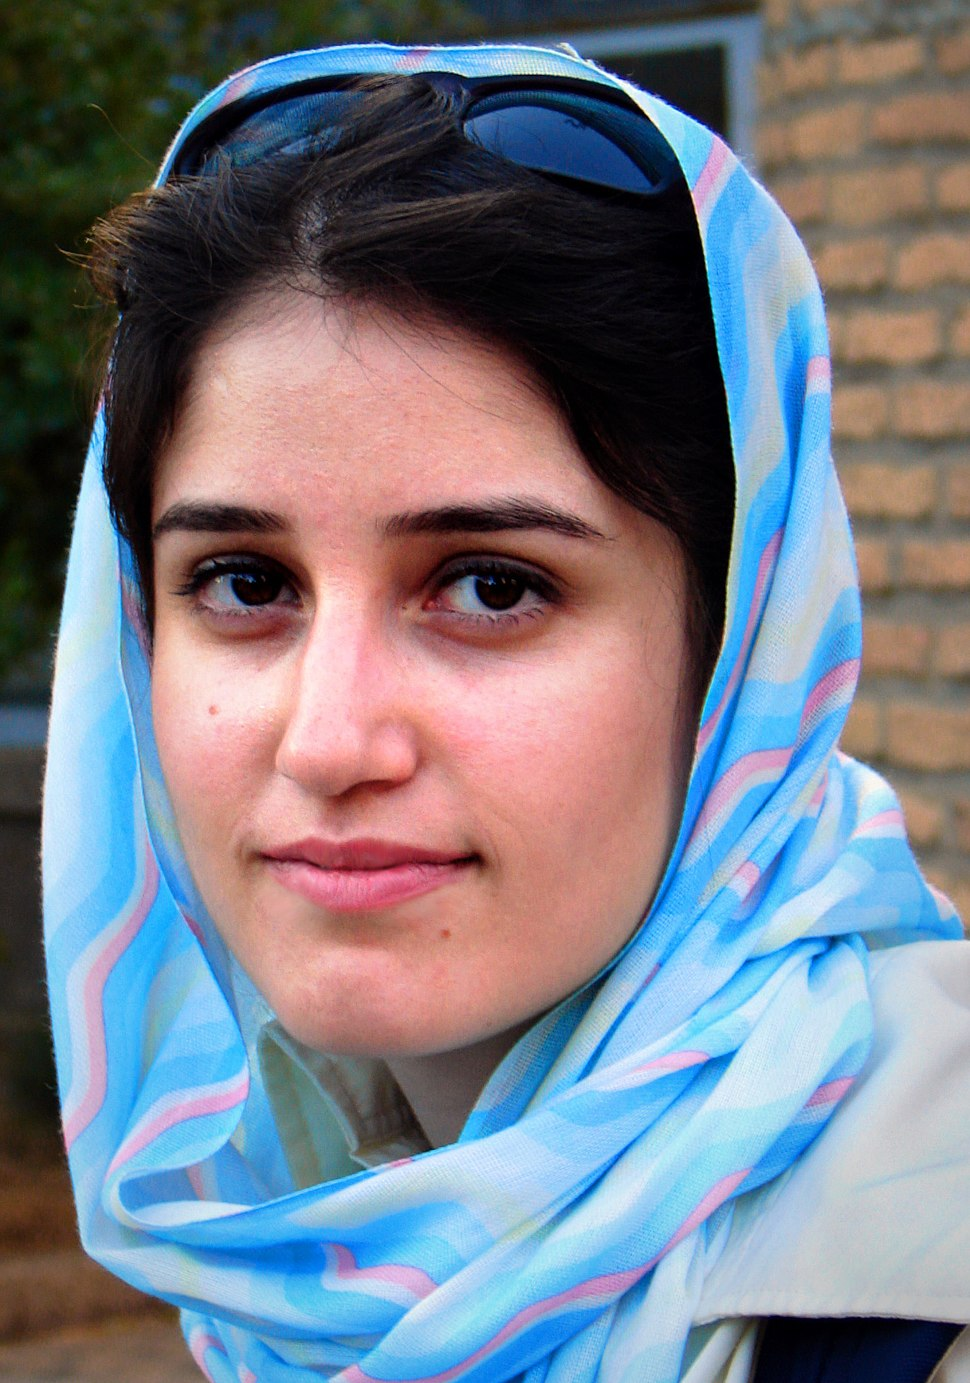 Portrait of a Persian lady in Iran, 10-08-2006 (cropped)